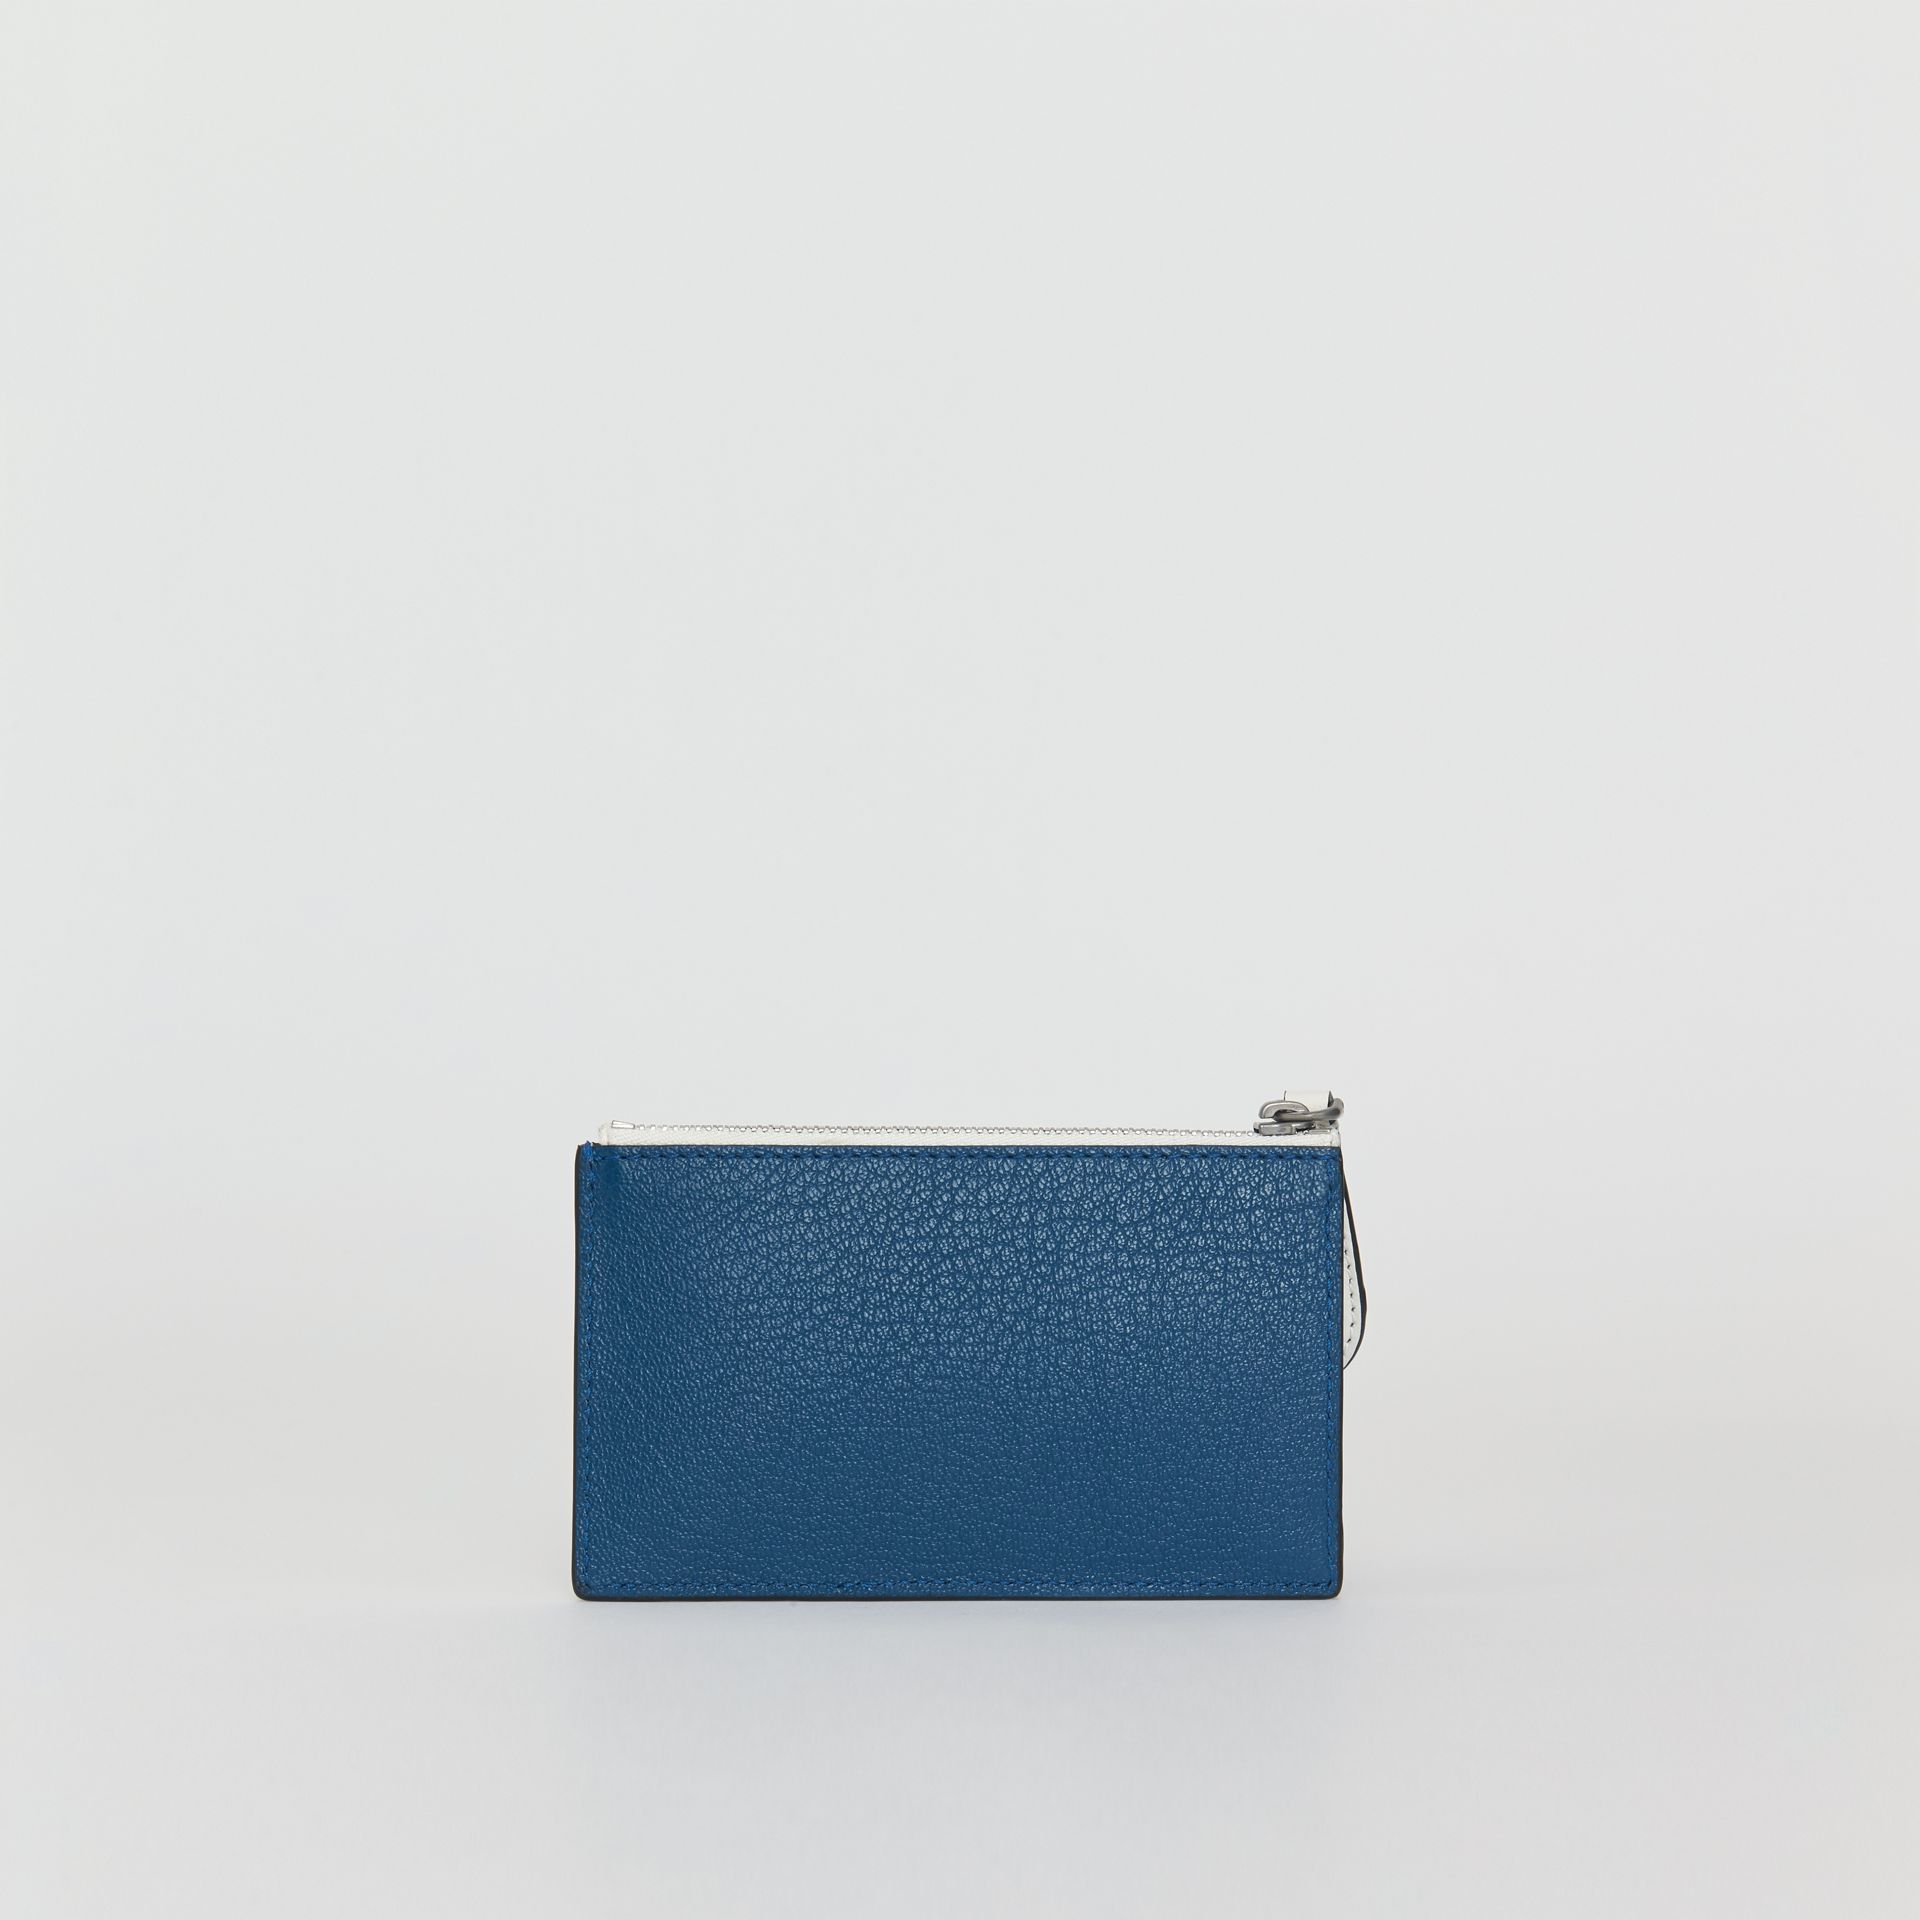 Two-tone Leather Zip Card Case in Peacock Blue | Burberry - gallery image 4